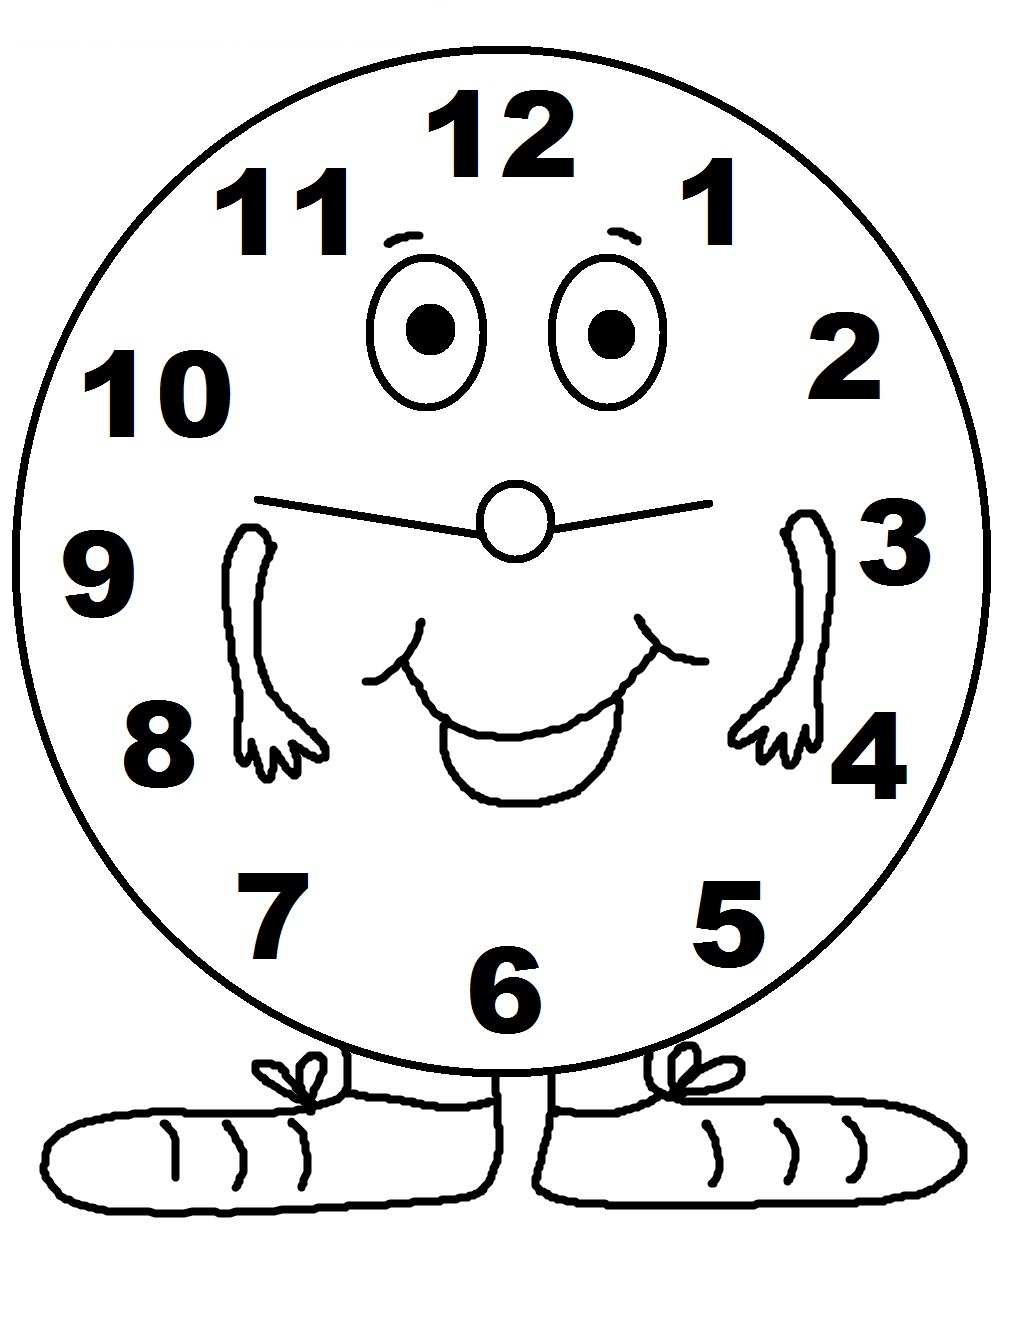 Free Printable Clock Coloring Pages For Kids Times Coloring Pages